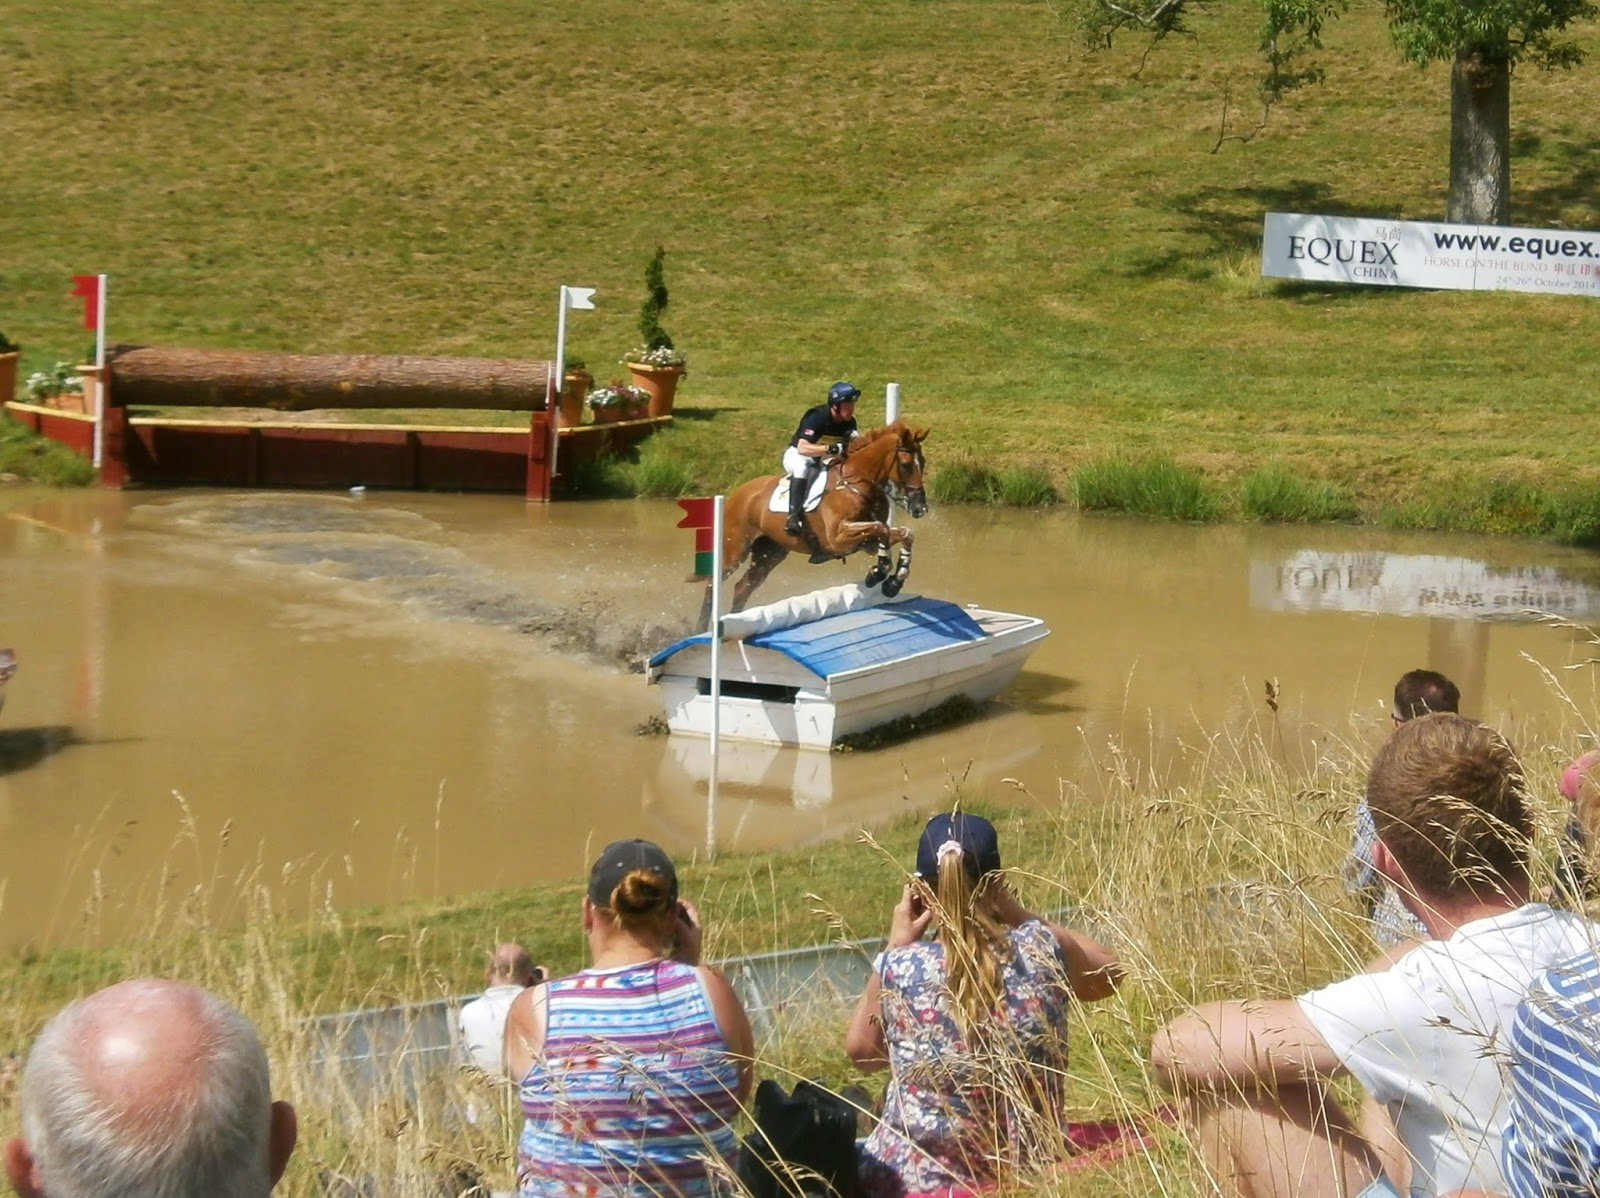 Oliver Townend on the cross country course at Gatcombe